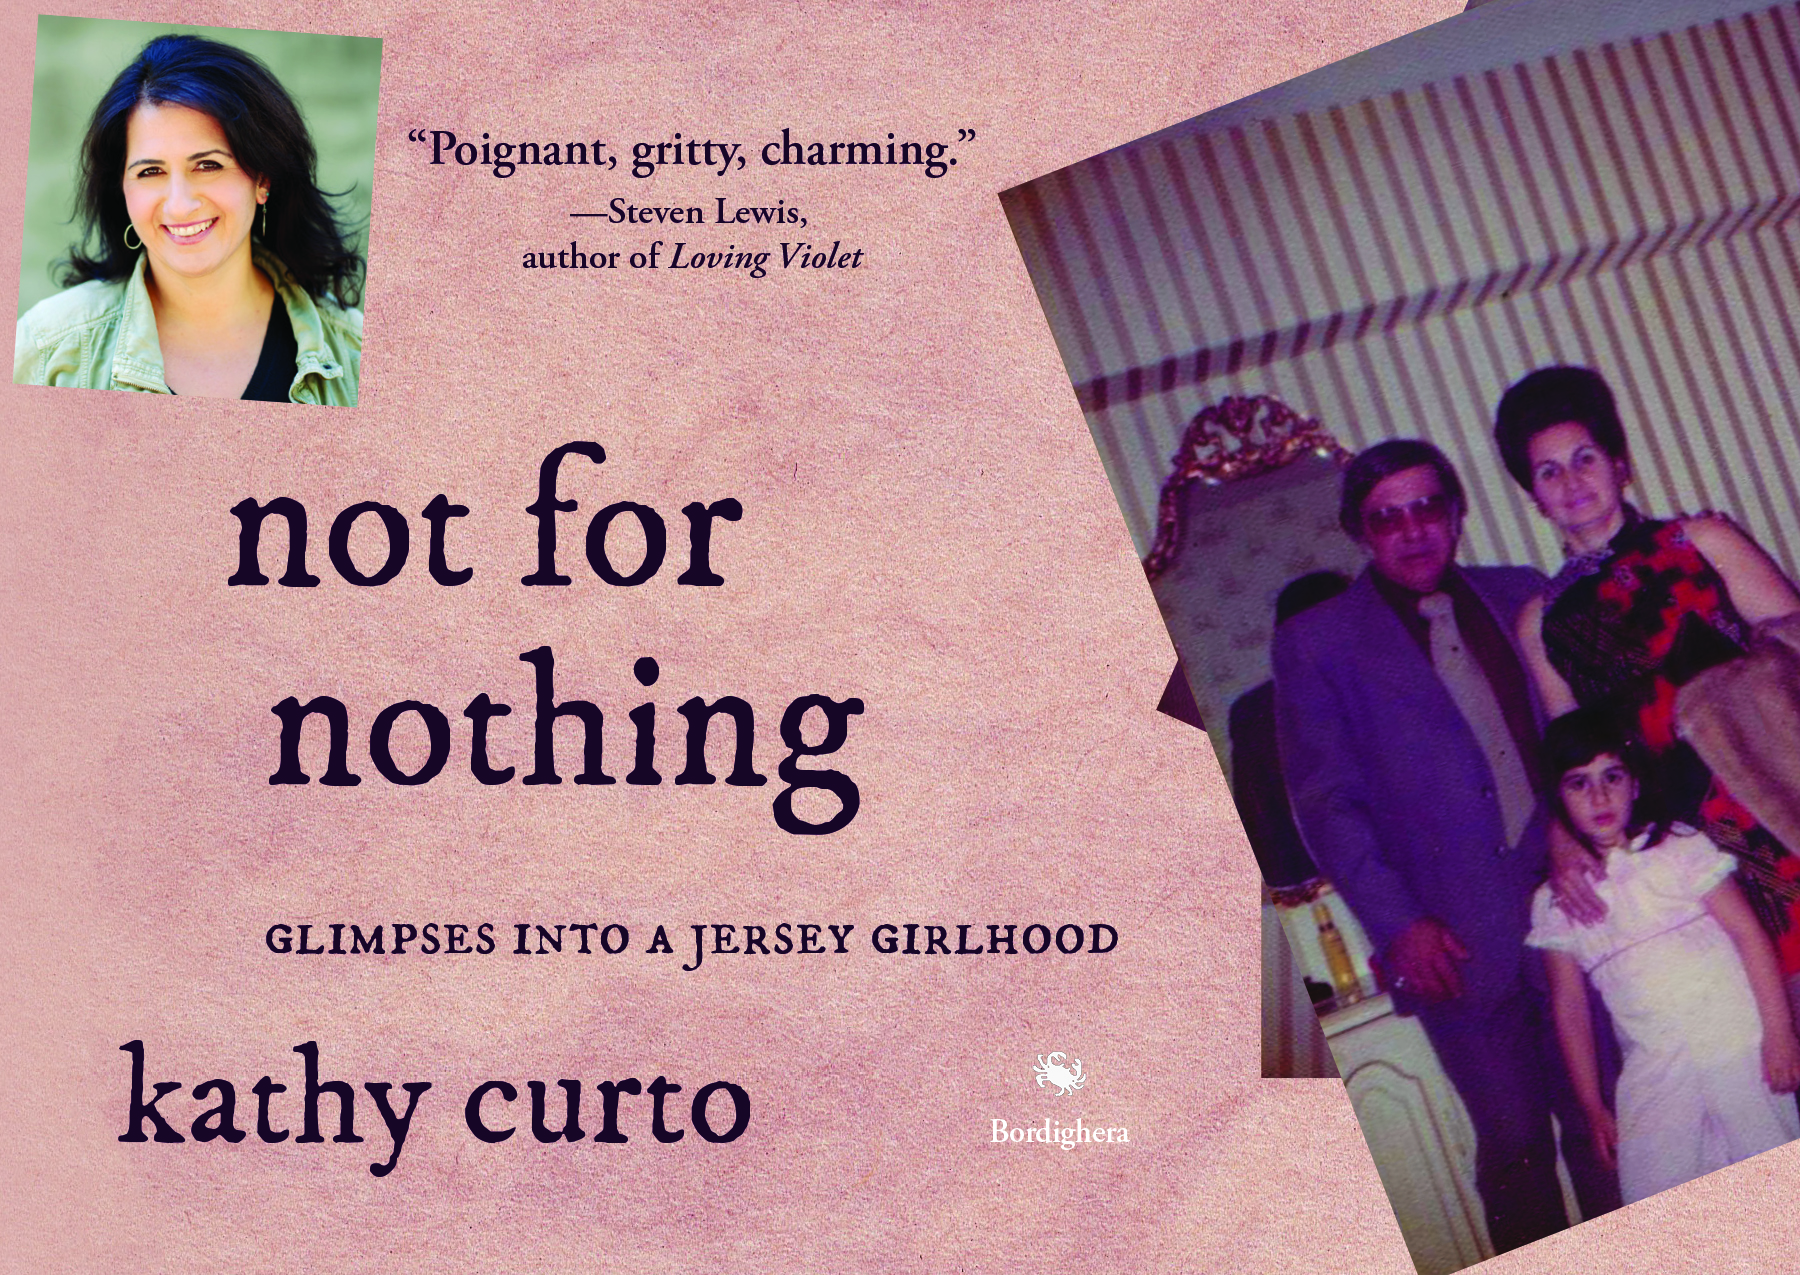 Postcard for Not for Nothing by Kathy Curto